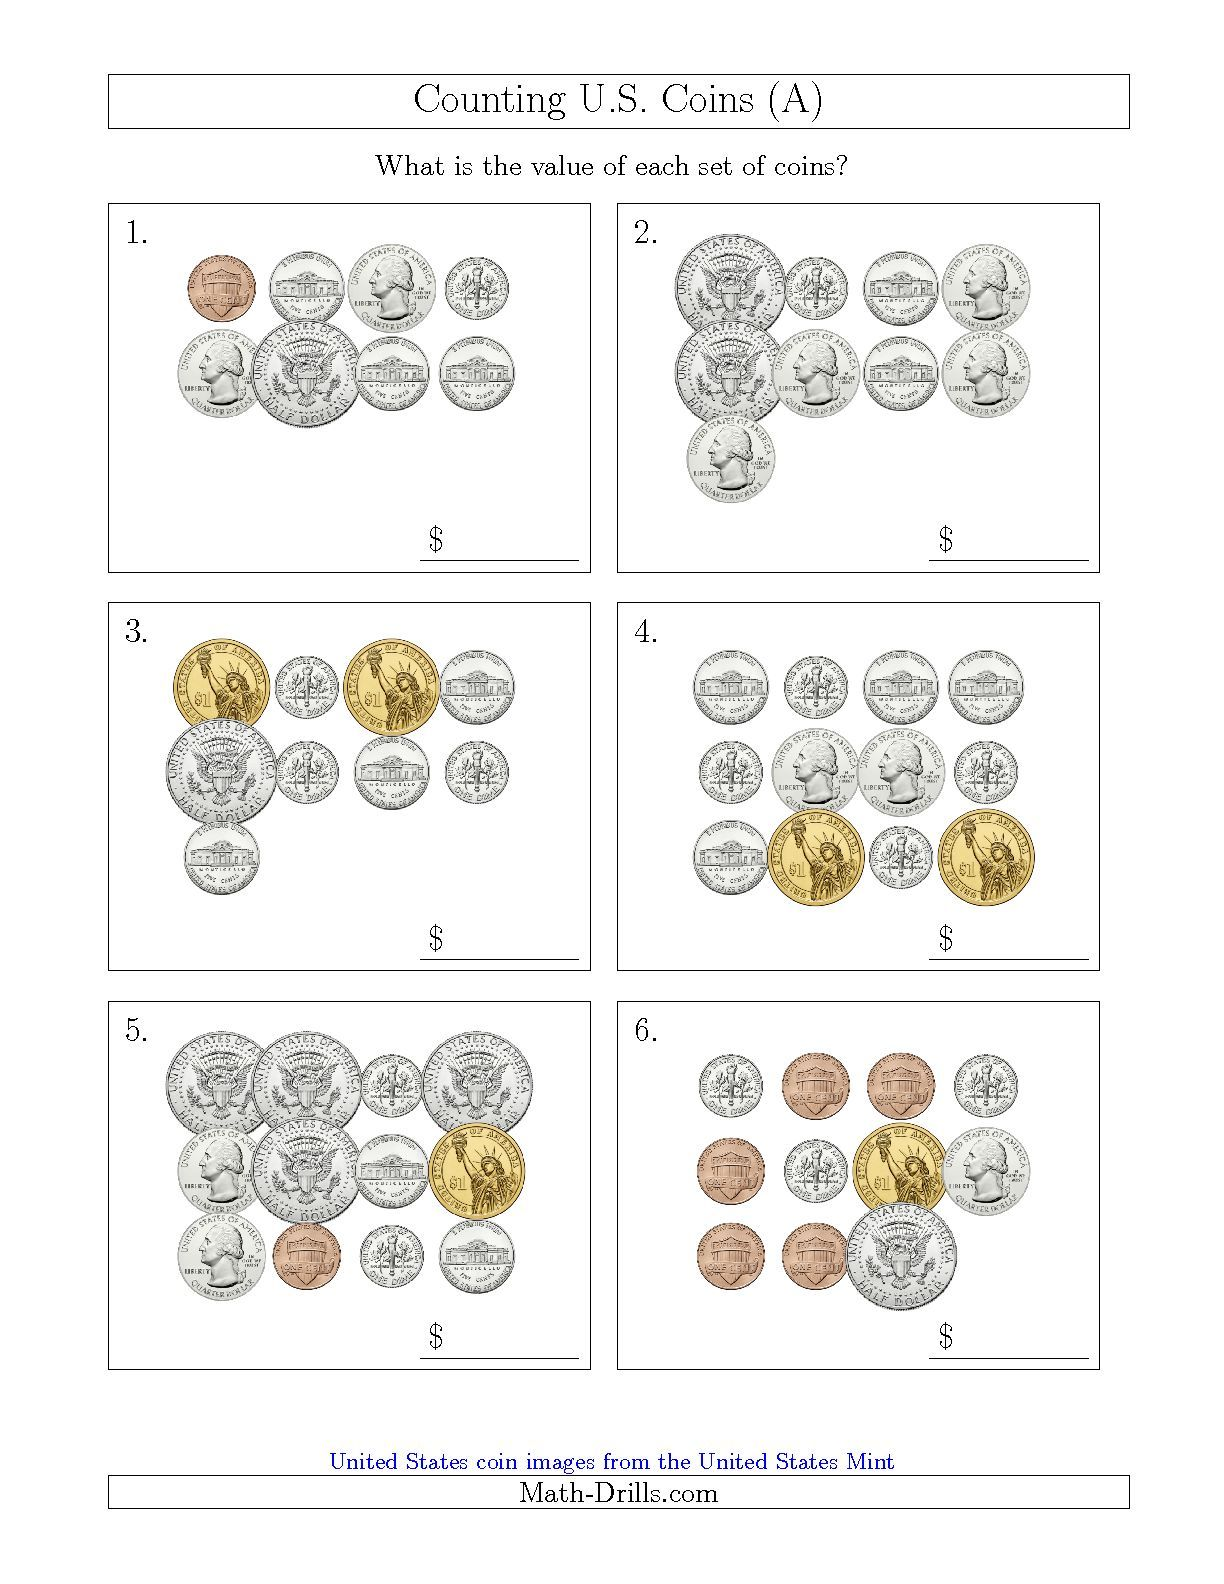 Counting U S Coins Including Half And One Dollar Coins A Money Worksheet Counting Coins Money Worksheets Money Activities